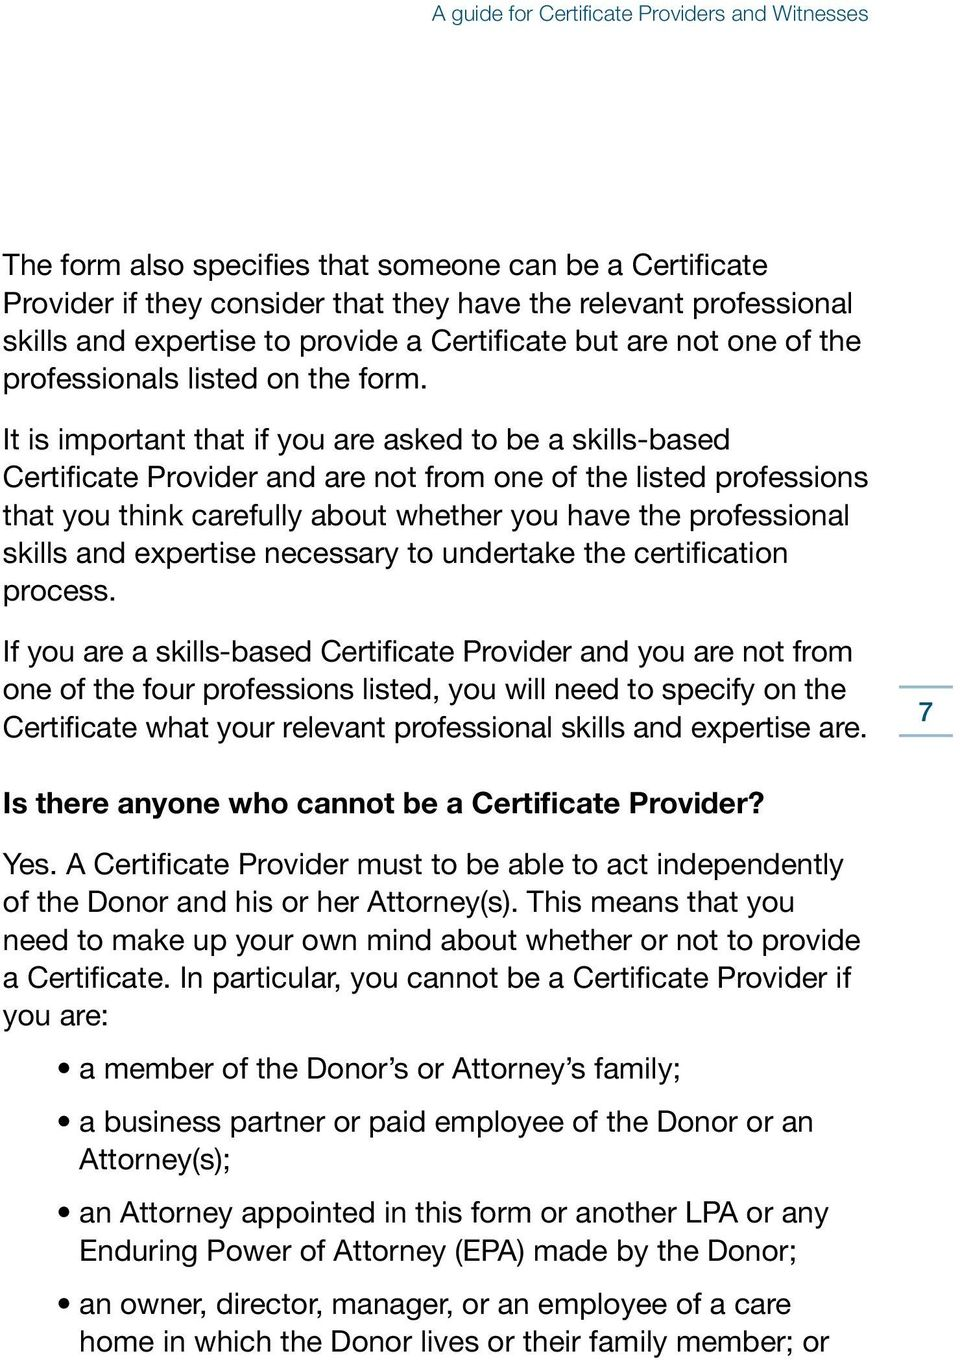 It is important that if you are asked to be a skills-based Certificate Provider and are not from one of the listed professions that you think carefully about whether you have the professional skills